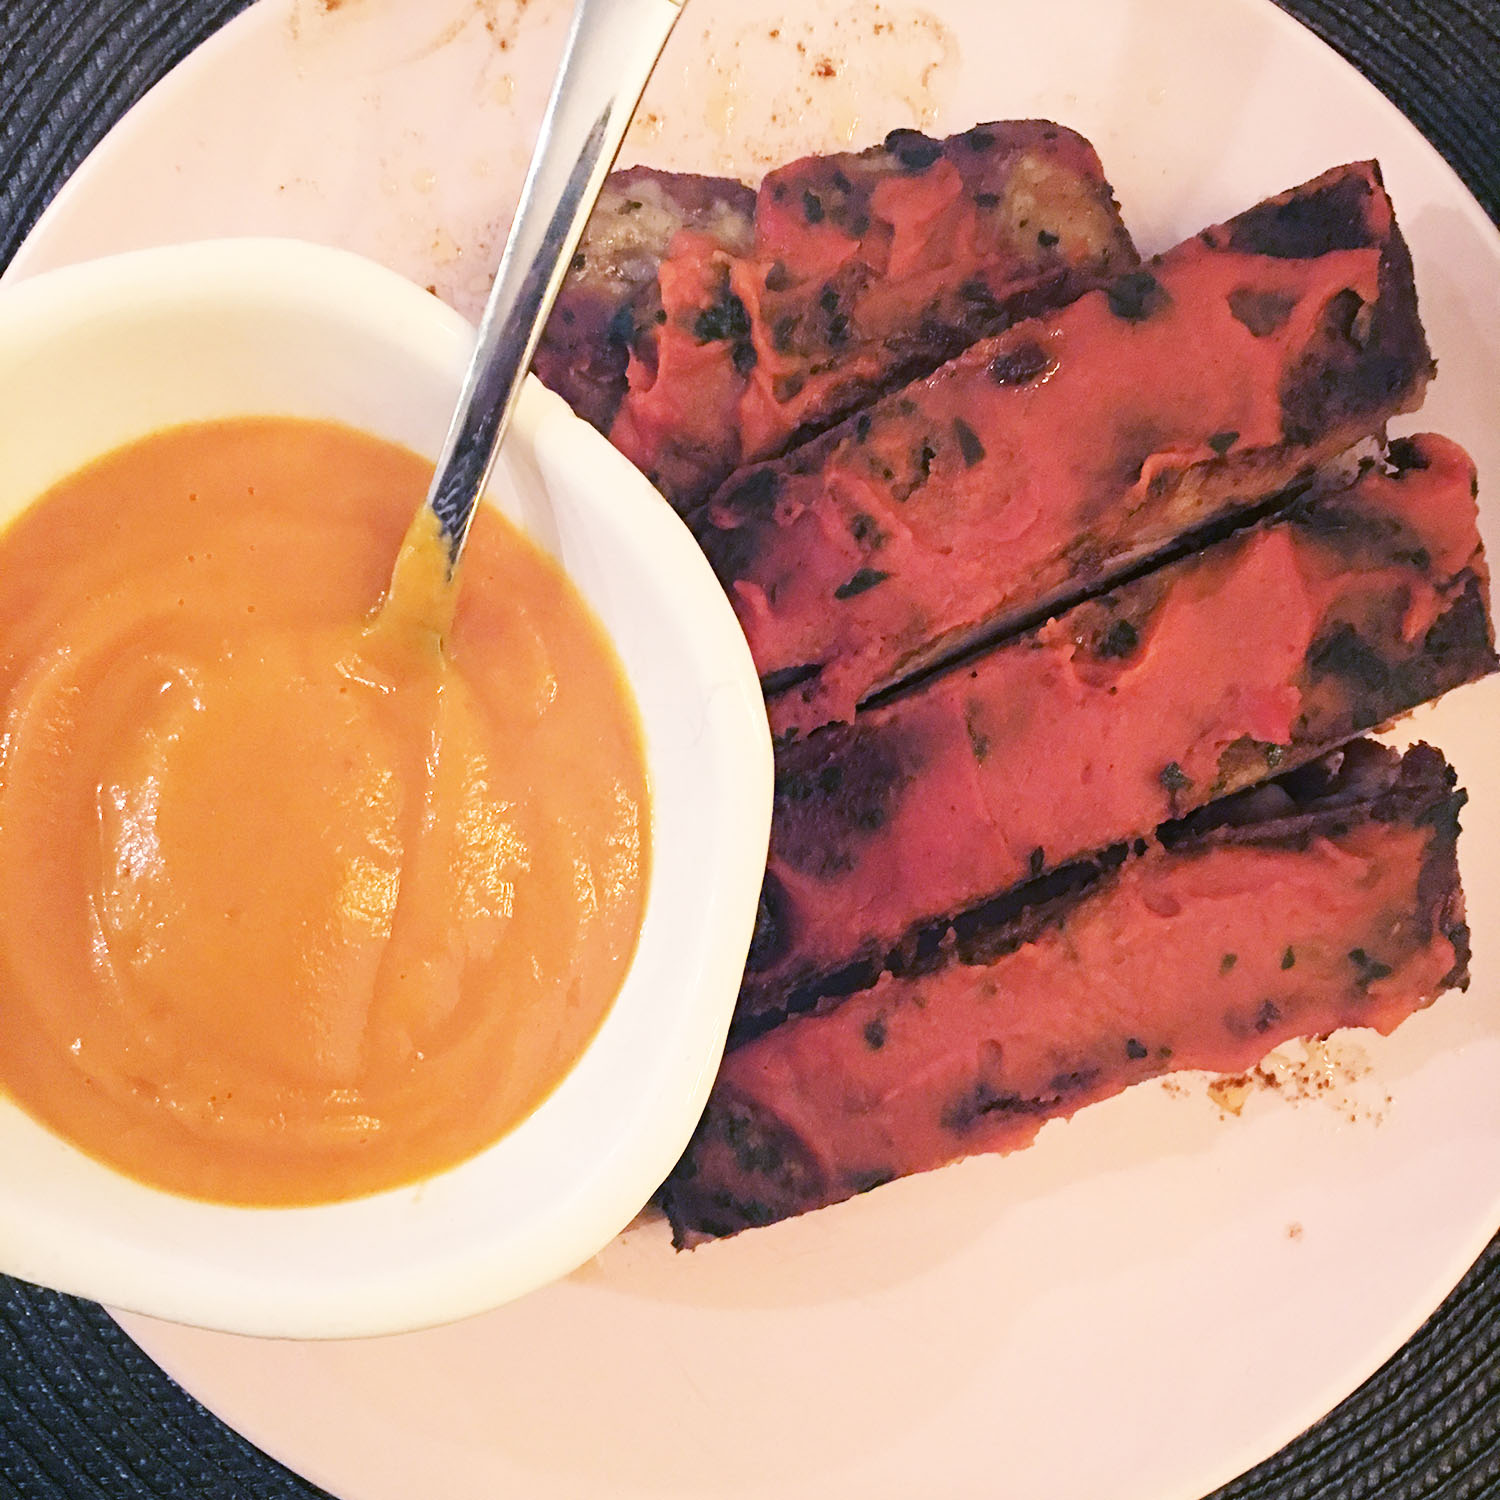 BABY BACK RIBS WITH A SWEET POTATO BARBECUE SAUCE